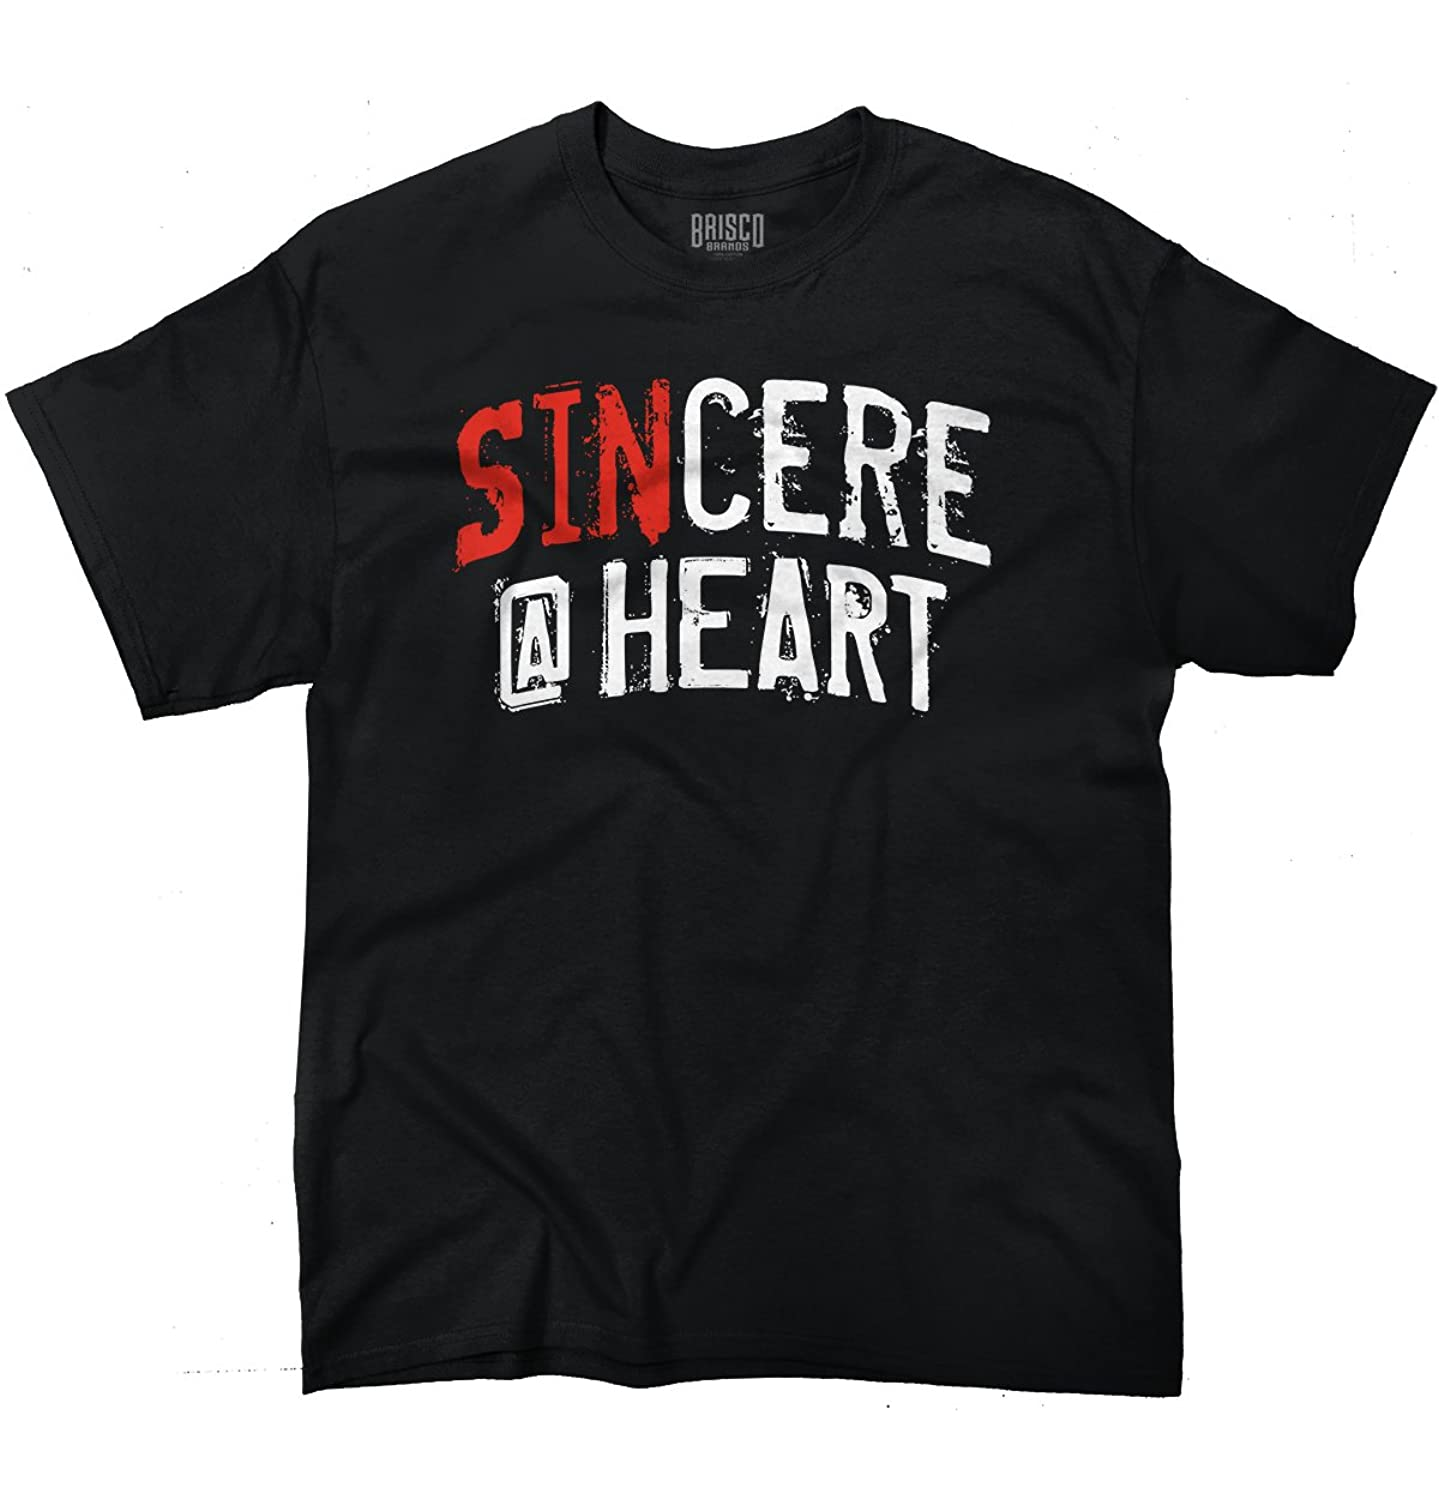 Sin-cere At Heart Funny T Shirt Humorous Novelty Fashion Gift T-Shirt Tee